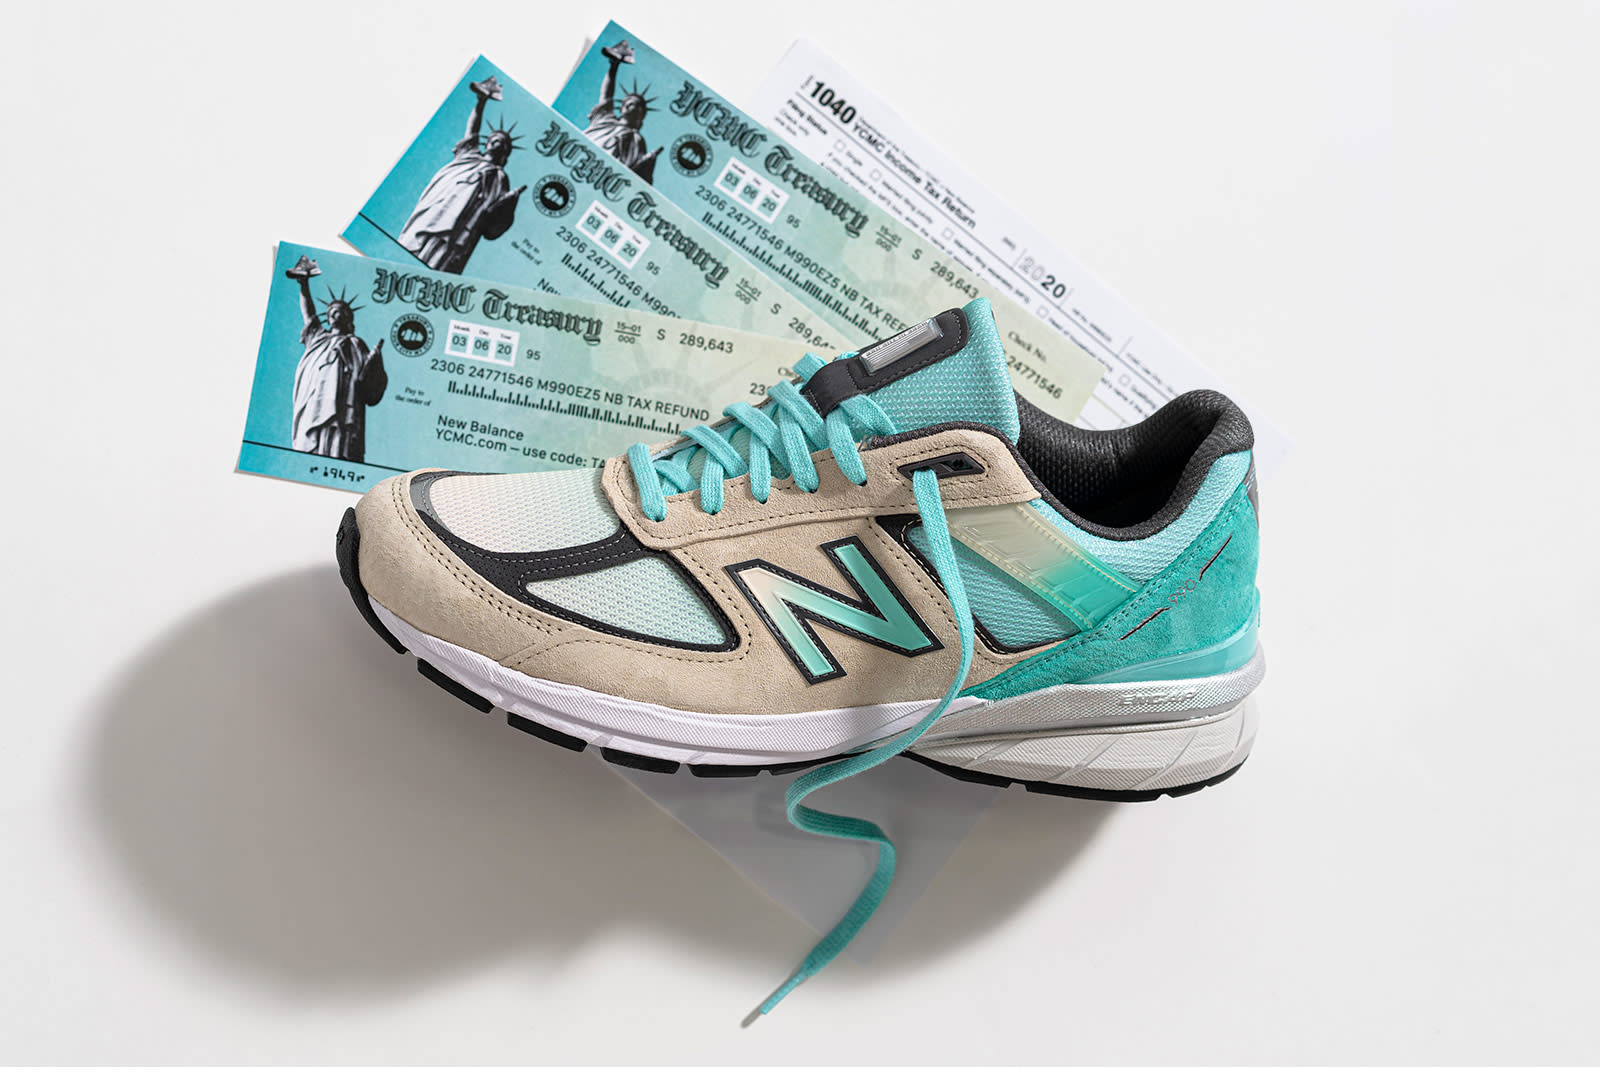 ycmc-new-balance-990v5-big-checks-and-no-stress-lateral